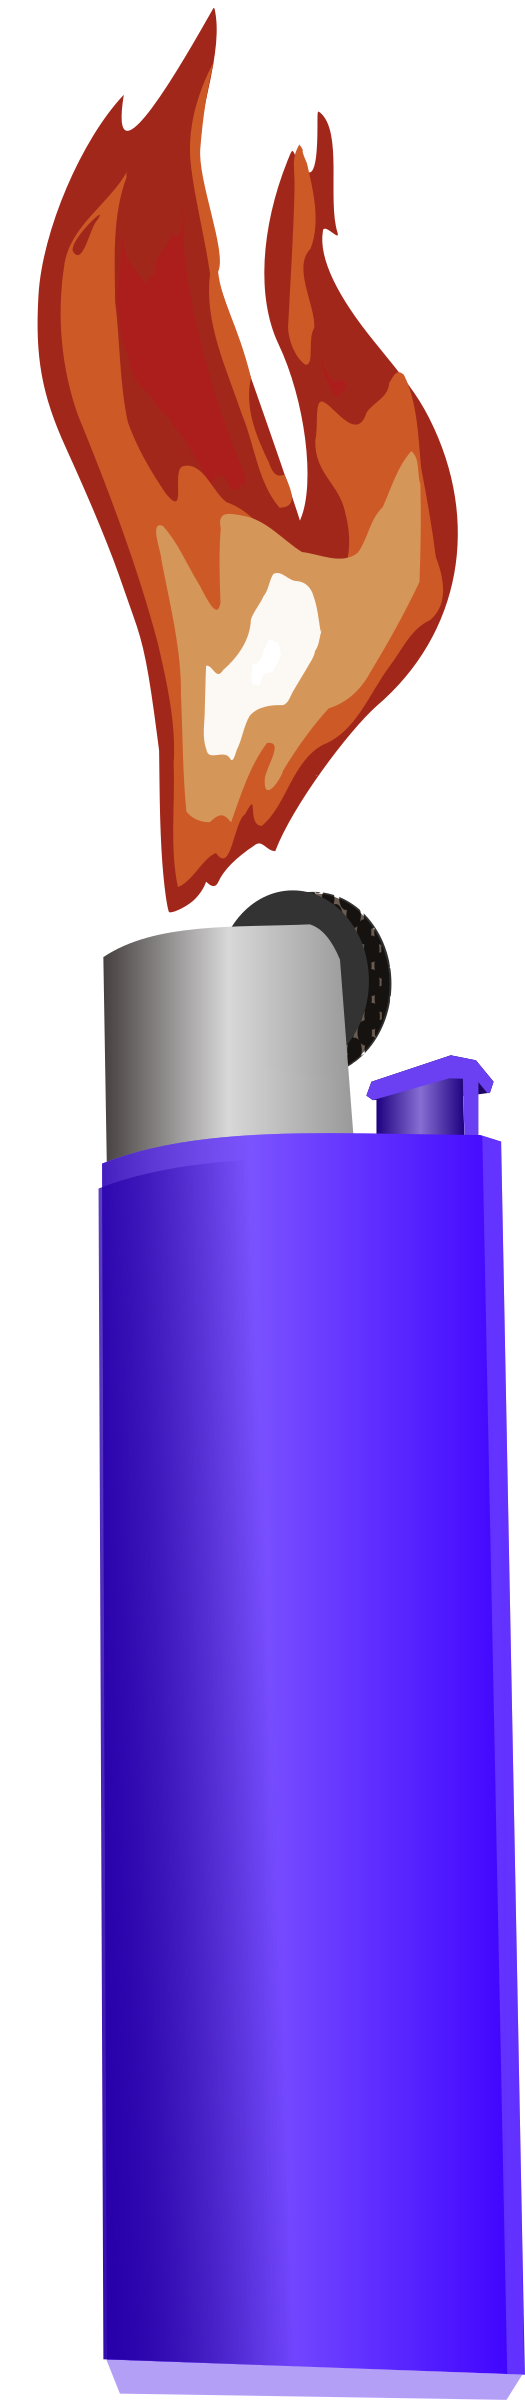 Flames clipart royalty free. Lighter with flame big